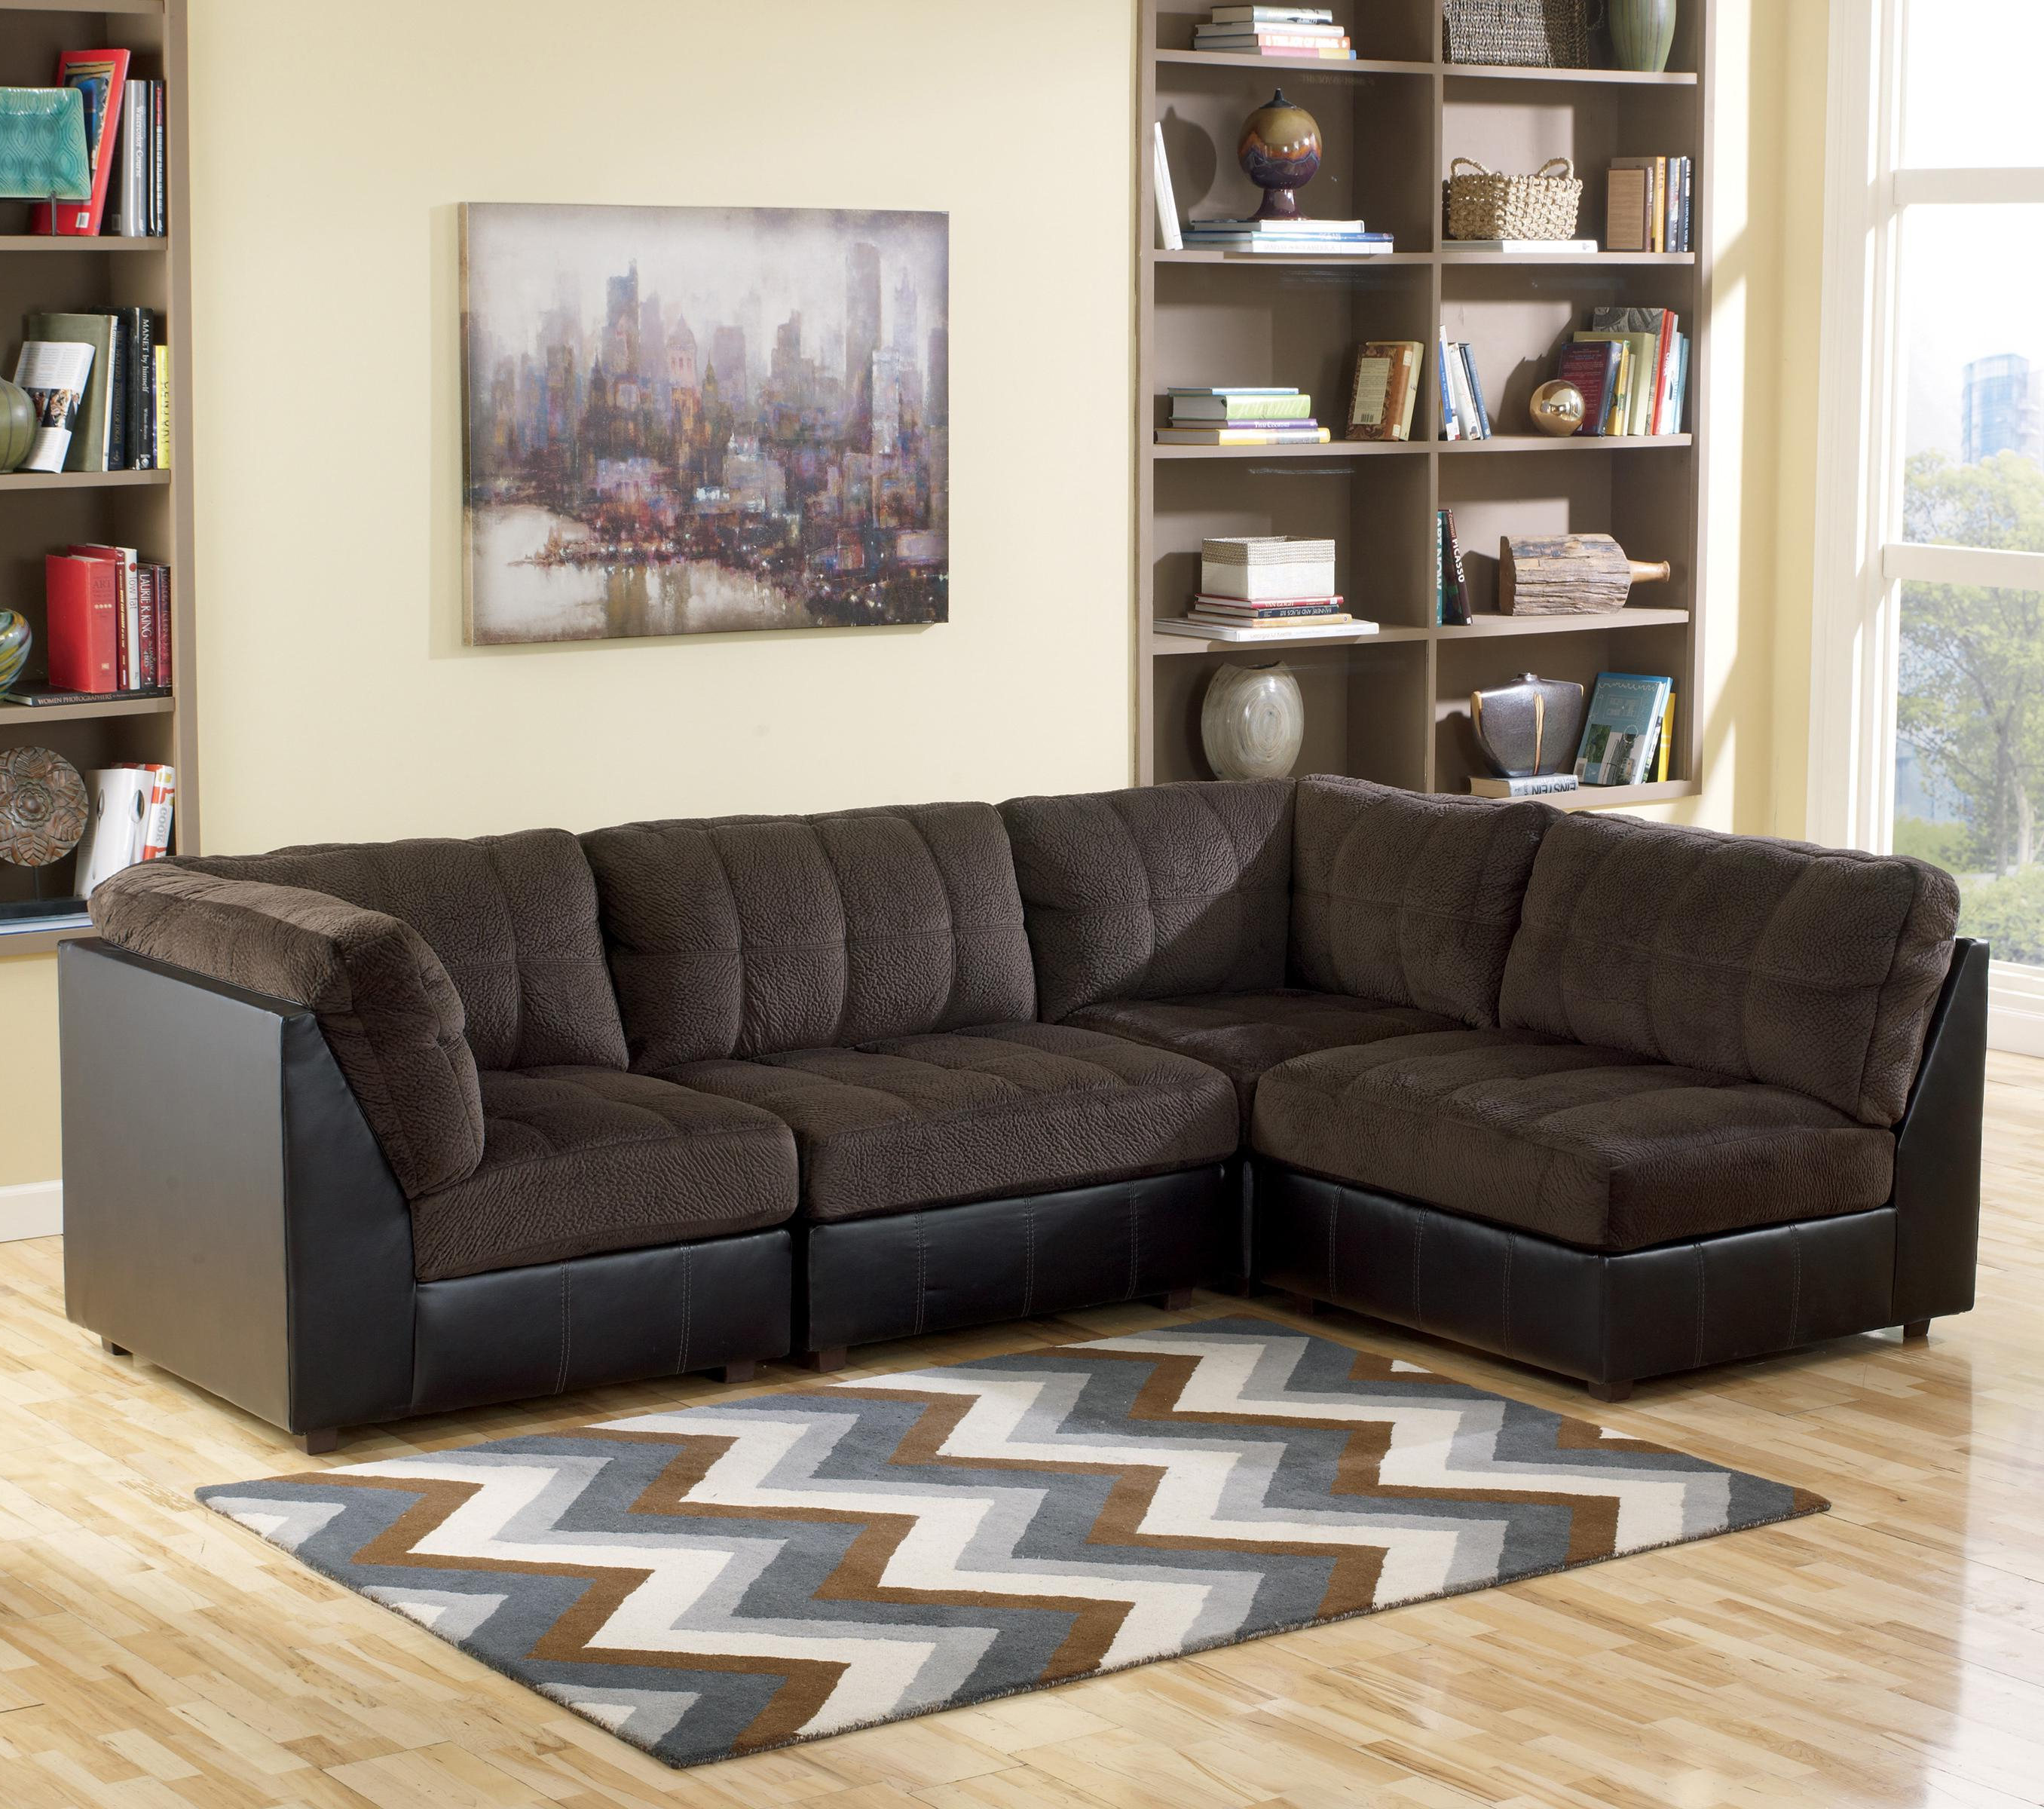 Most Recently Released Signature Designashley Hobokin – Chocolate Contemporary 4 Piece Within Norfolk Chocolate 6 Piece Sectionals With Raf Chaise (View 11 of 20)